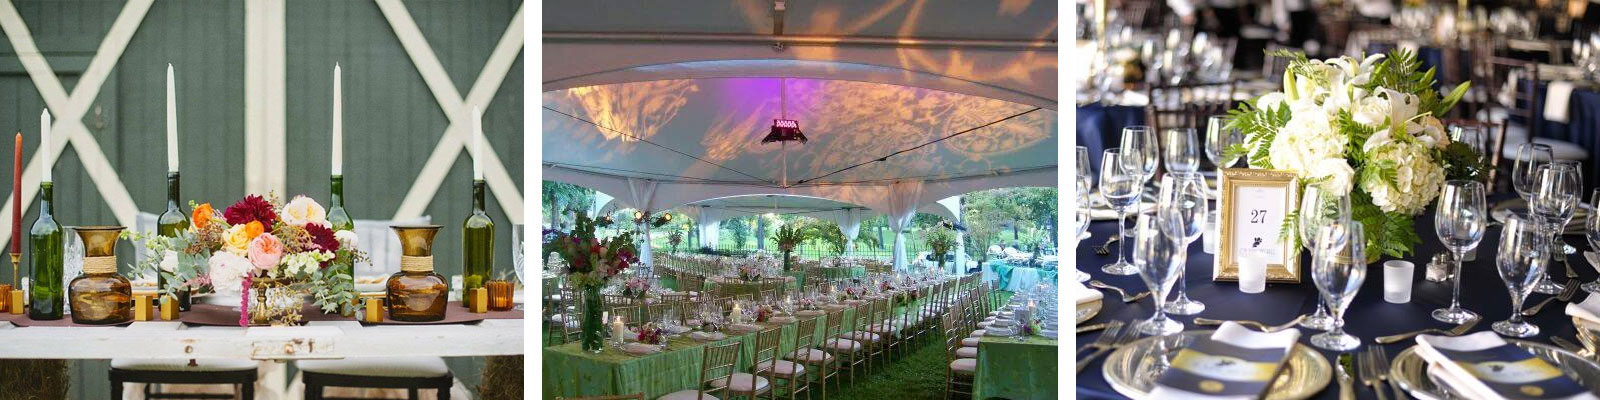 Tents u0026 Staging Rentals in Tulsa Metro & About Party Pro Rents in Tulsa OK